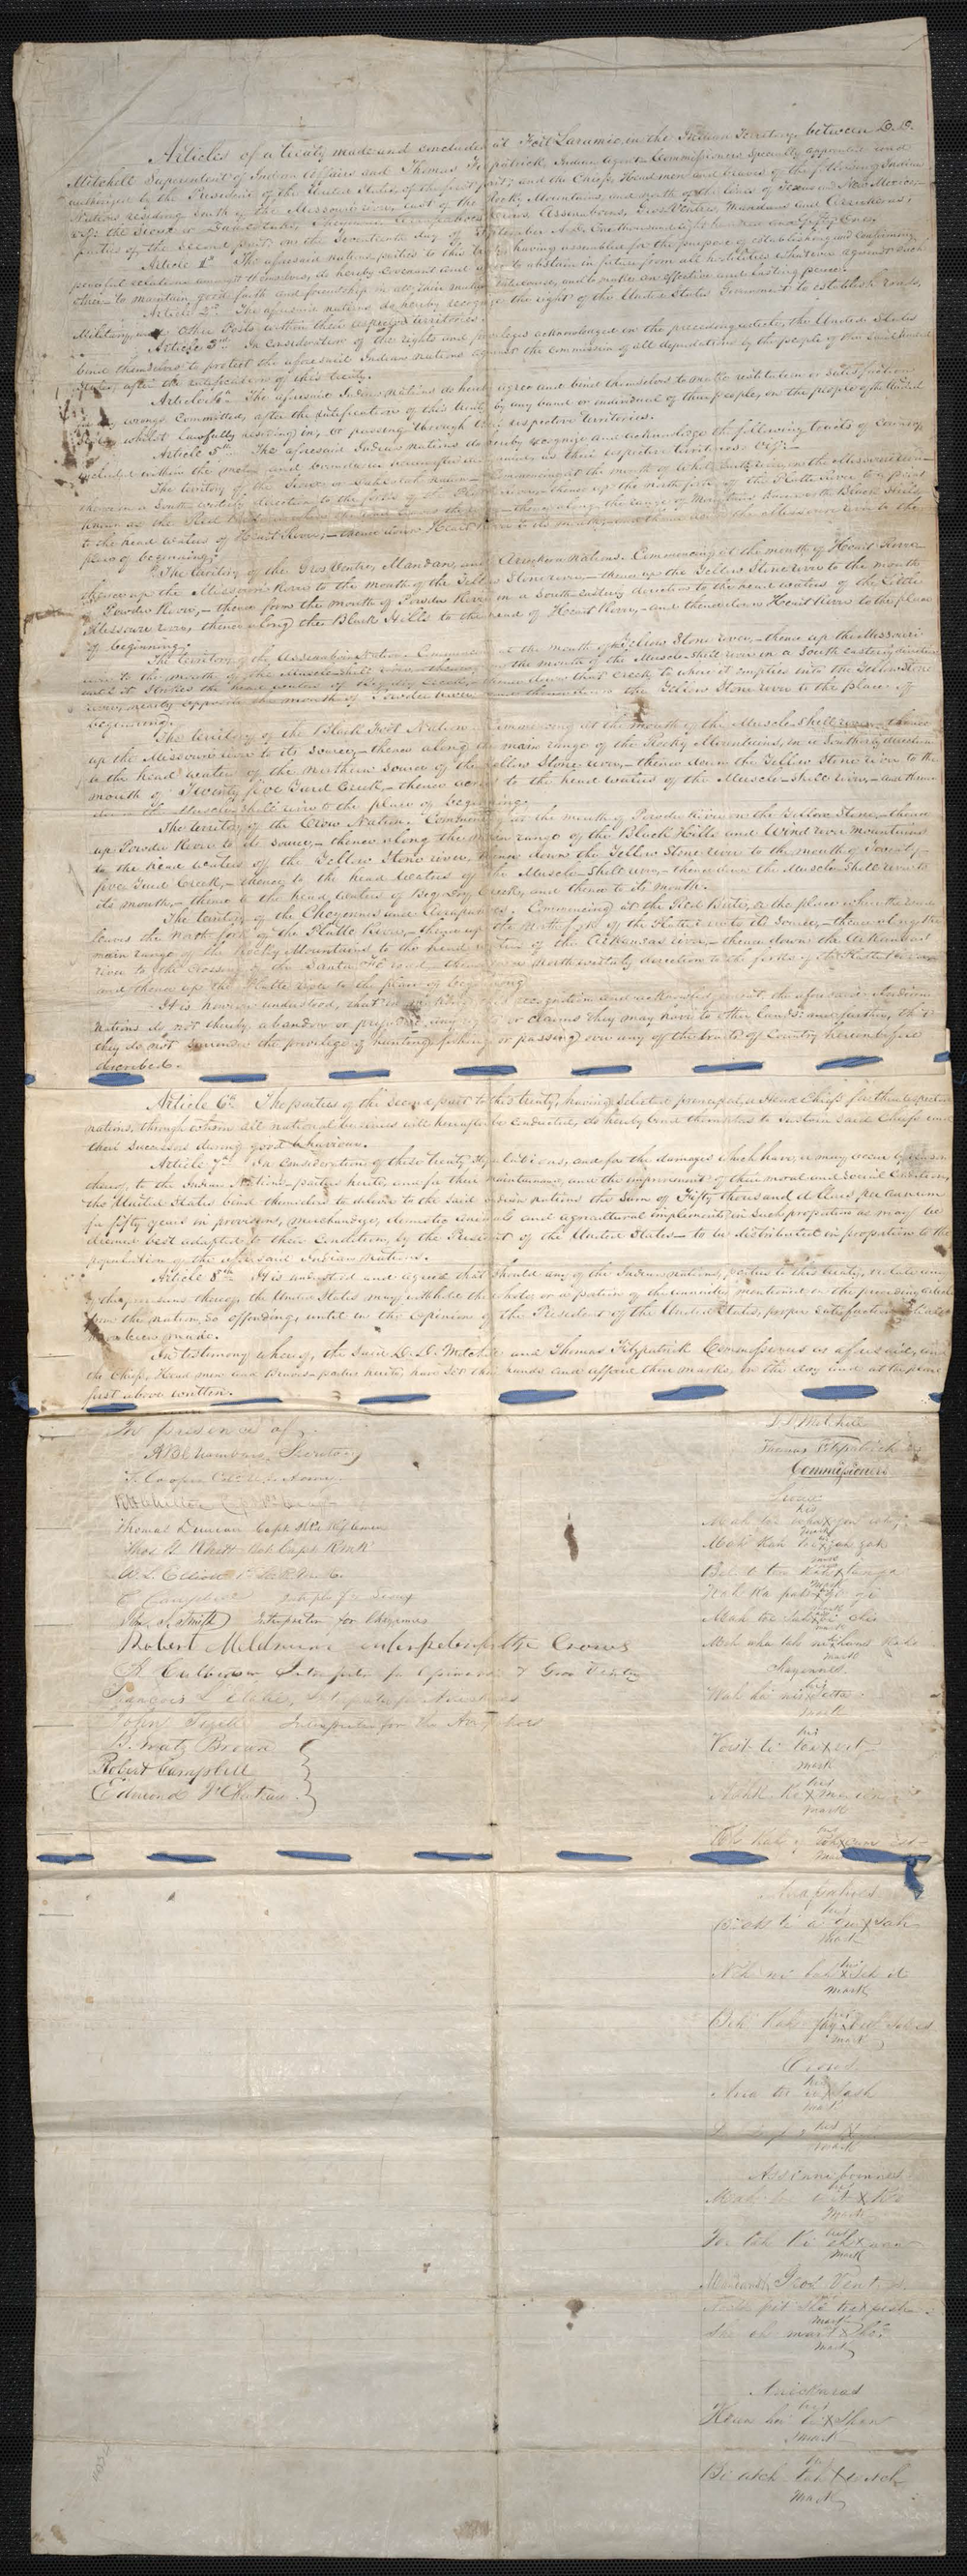 Fort Laramie Treaty of 1851 - U.S. National Archives   Records of the Bureau of Indian Affairs, 1793 - 1999